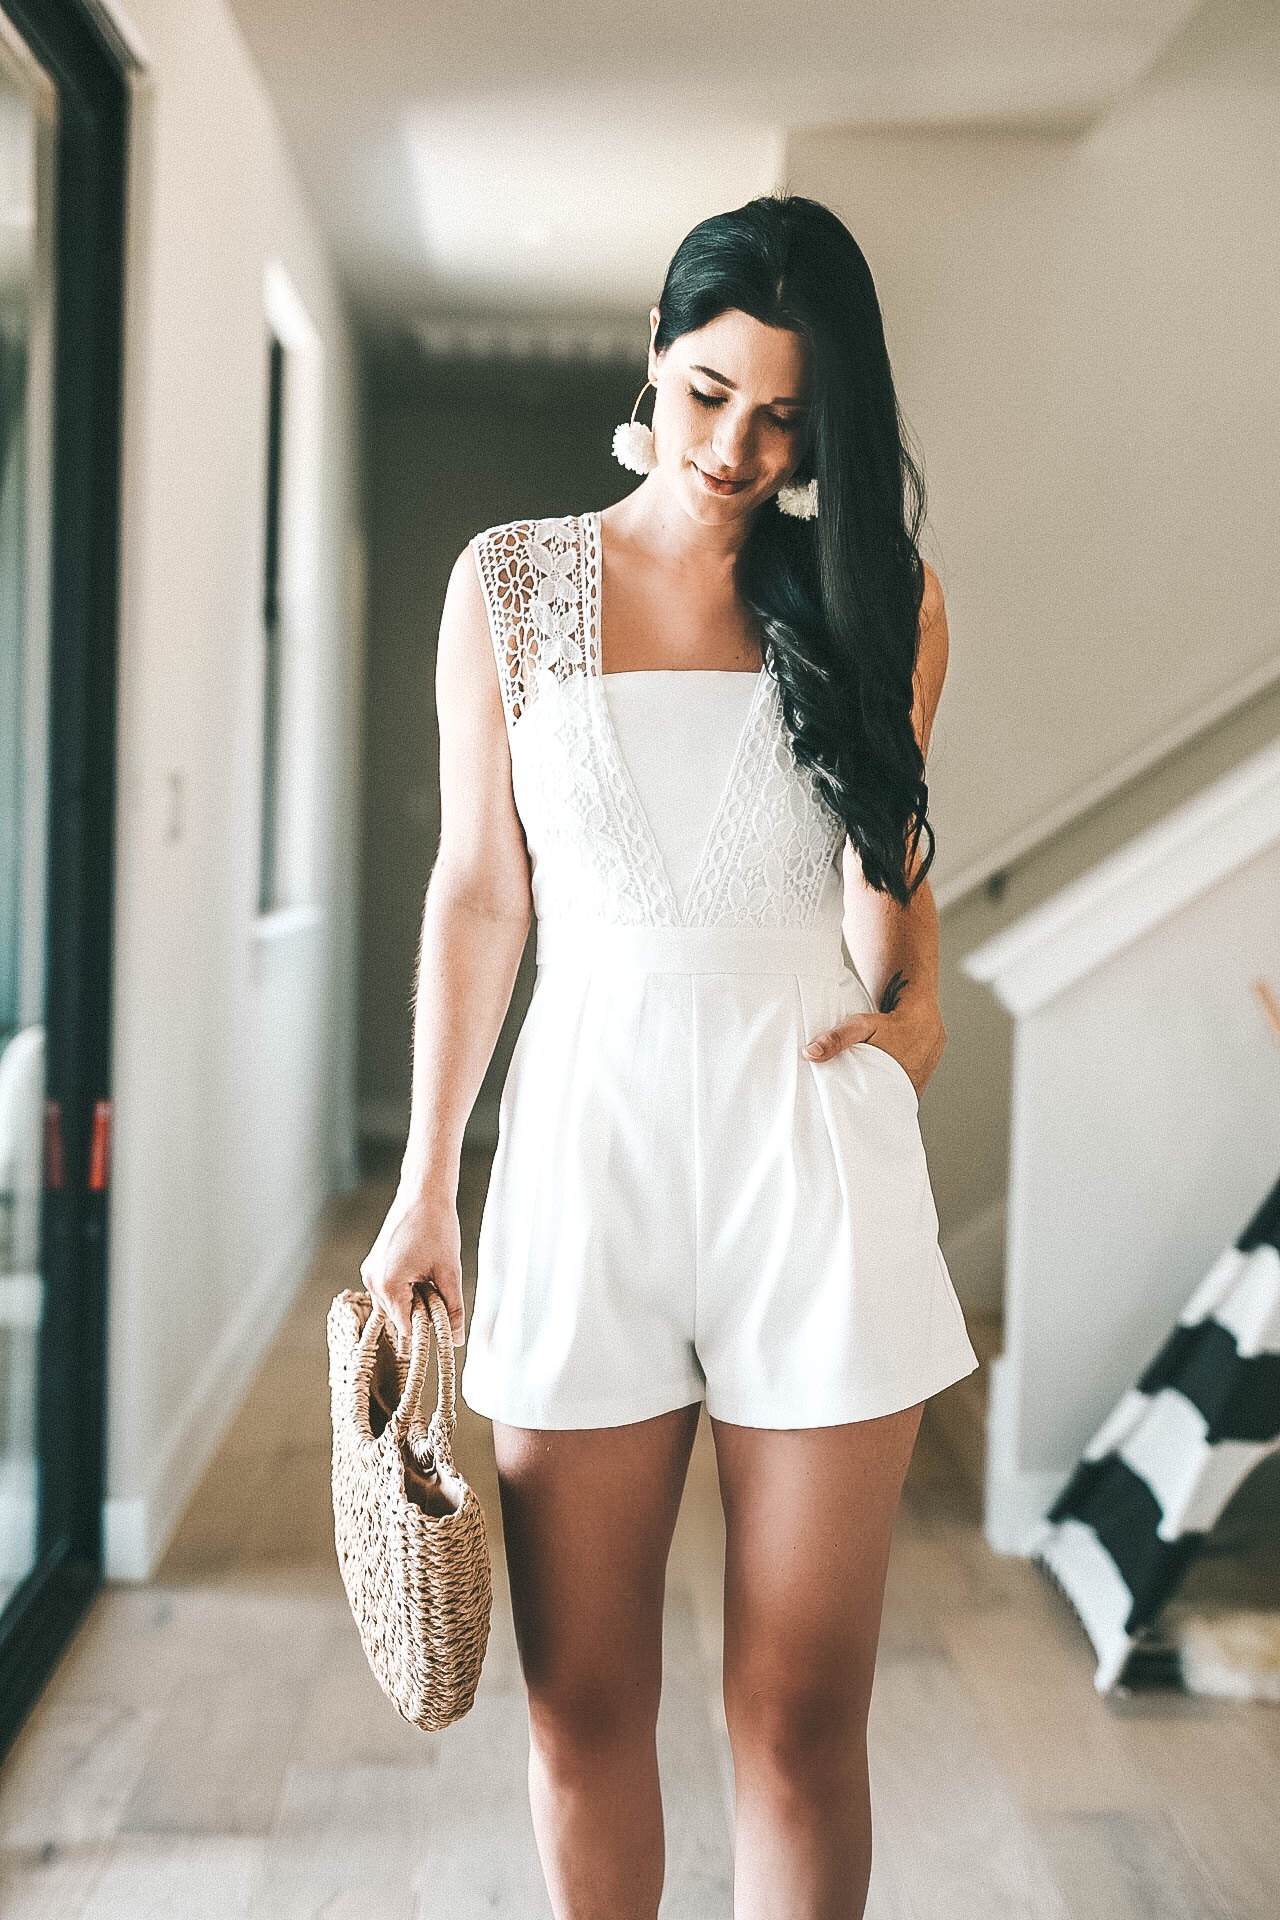 Affordable White Lace Romper for Summer | Chicwish Romper | romper style tips | how to wear a romper || Dressed to Kill #summerfashion #fashion #style #outfits #summeroutfits #romper #dtkaustin - {Chicwish White Lace Romper + Giveaway} featured by popular Austin fashion blogger, Dressed to Kill